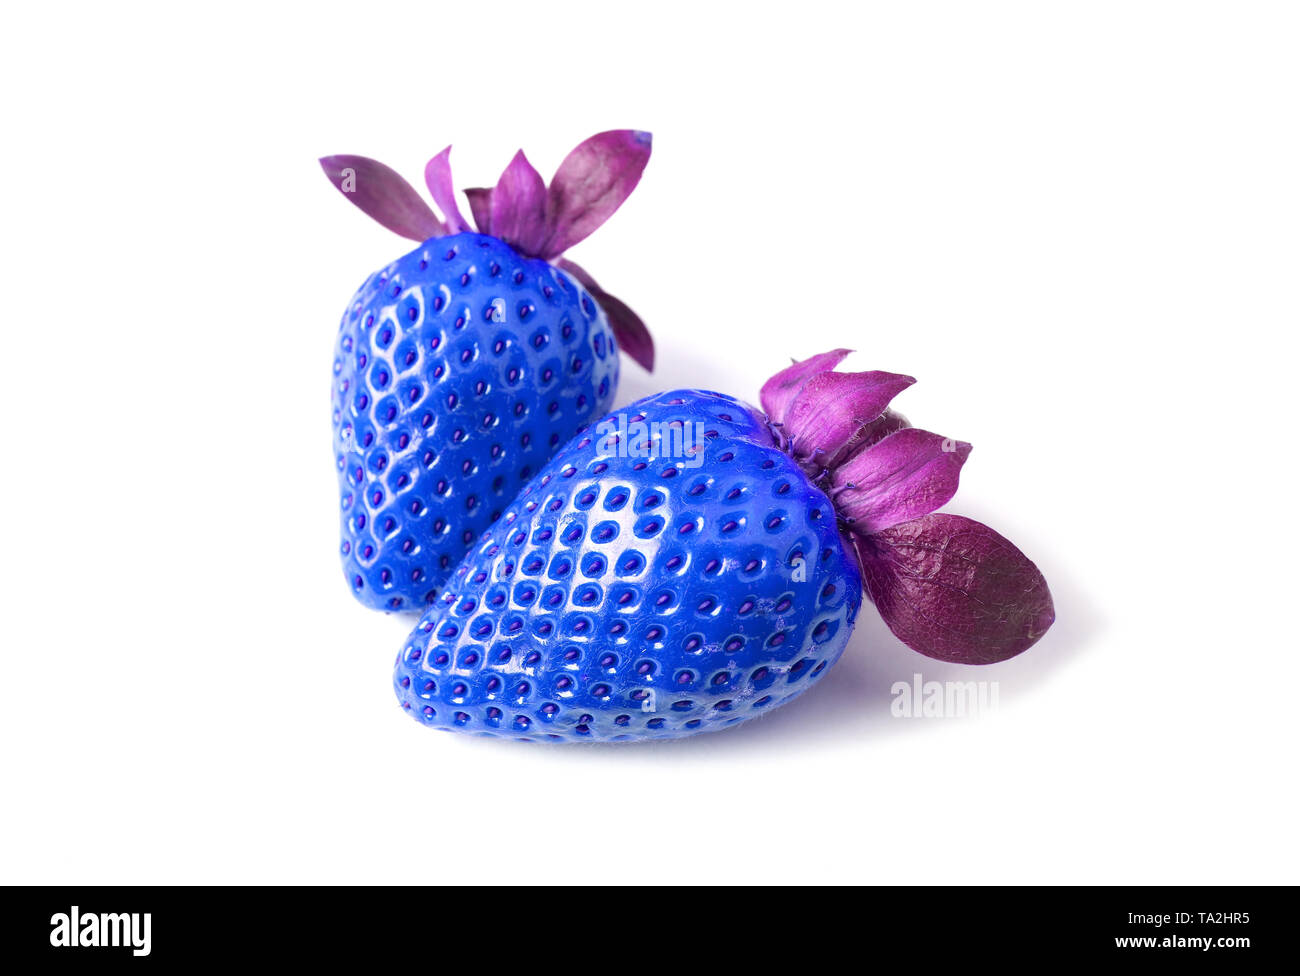 Pair of Fresh Strawberries in Vibrant Blue and Purple Isolated on White Background - Stock Image